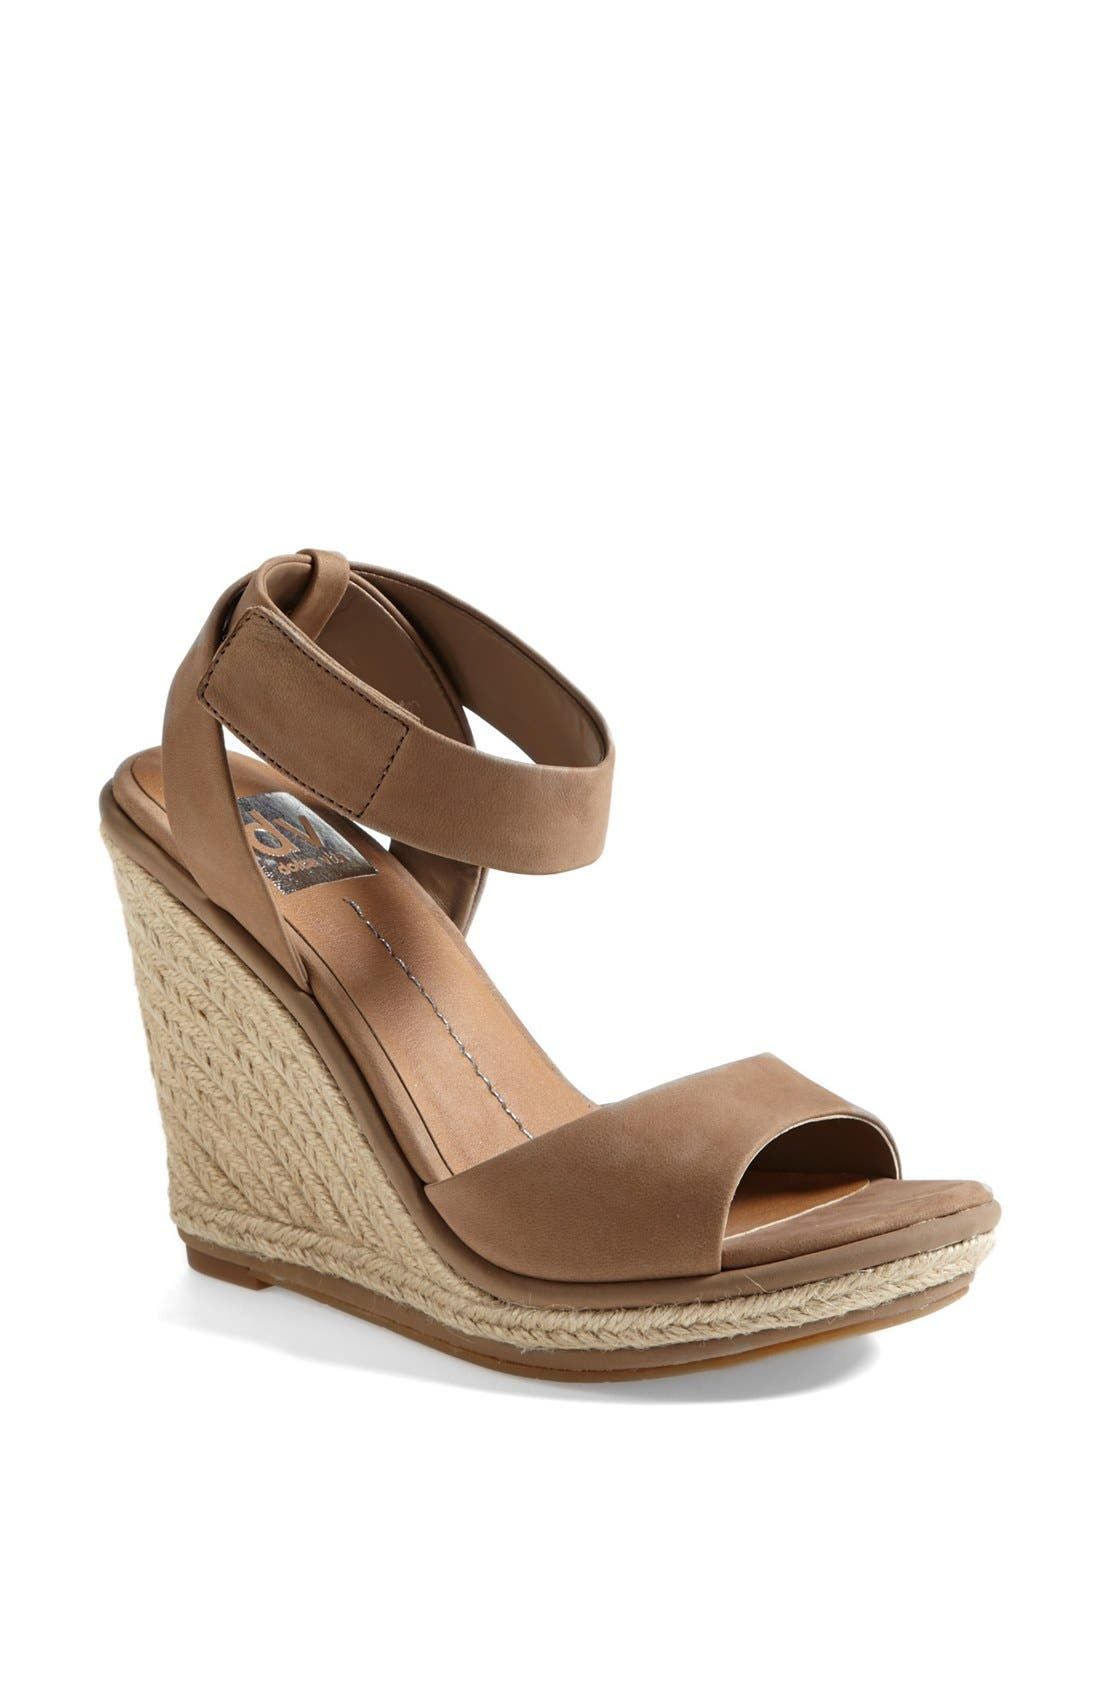 DV by Dolce Vita 'Tonya' Sandal,                             Main thumbnail 1, color,                             Taupe